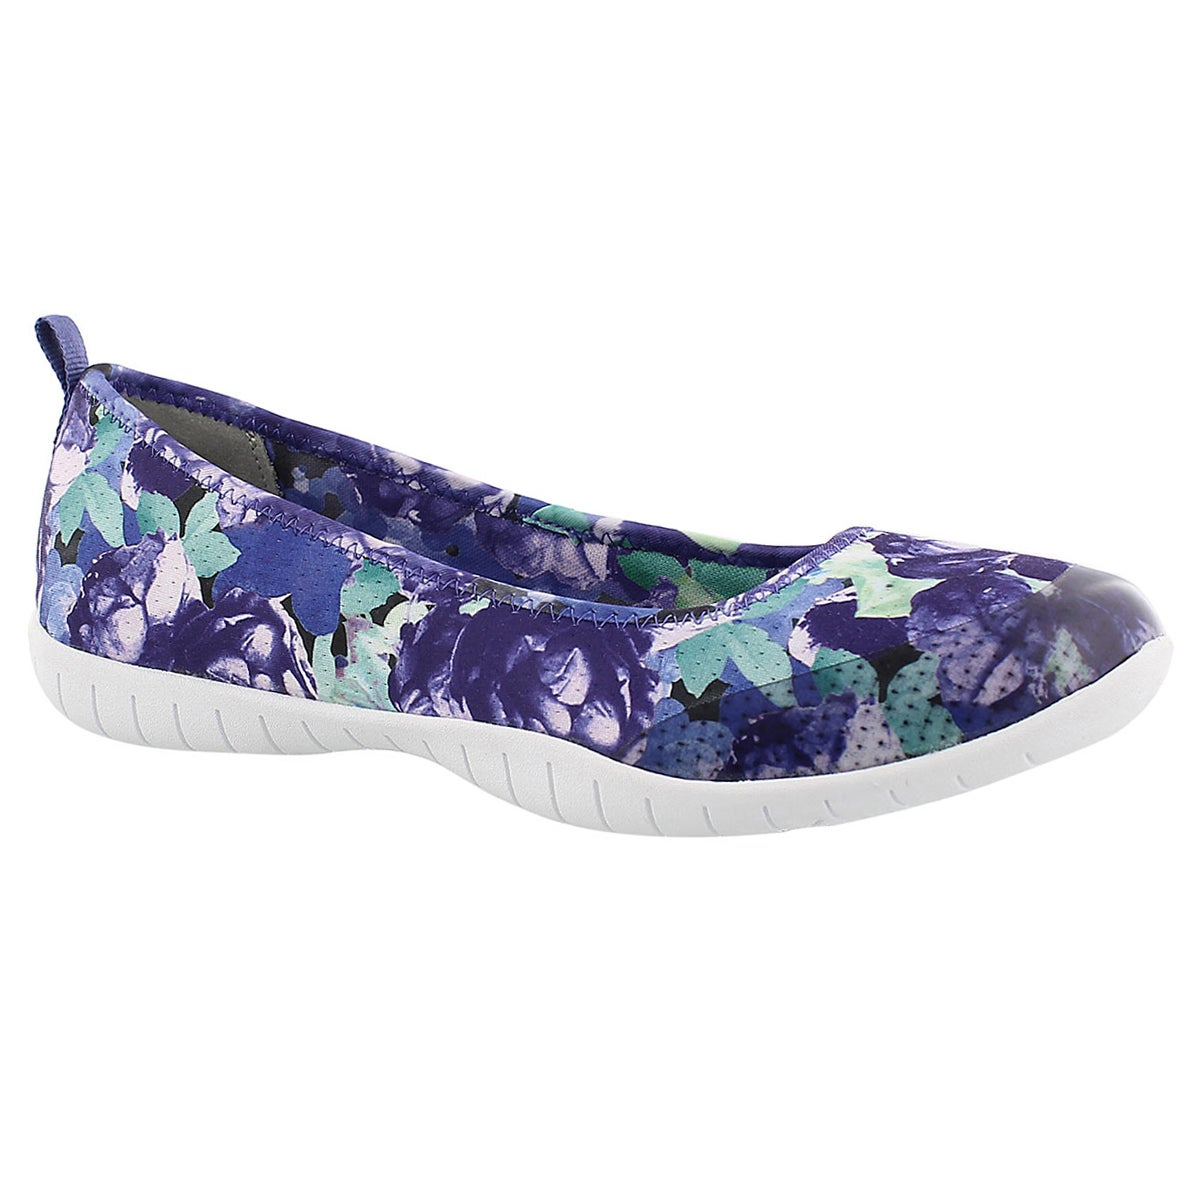 Lds Sweet Bouquet purple ballerina flat